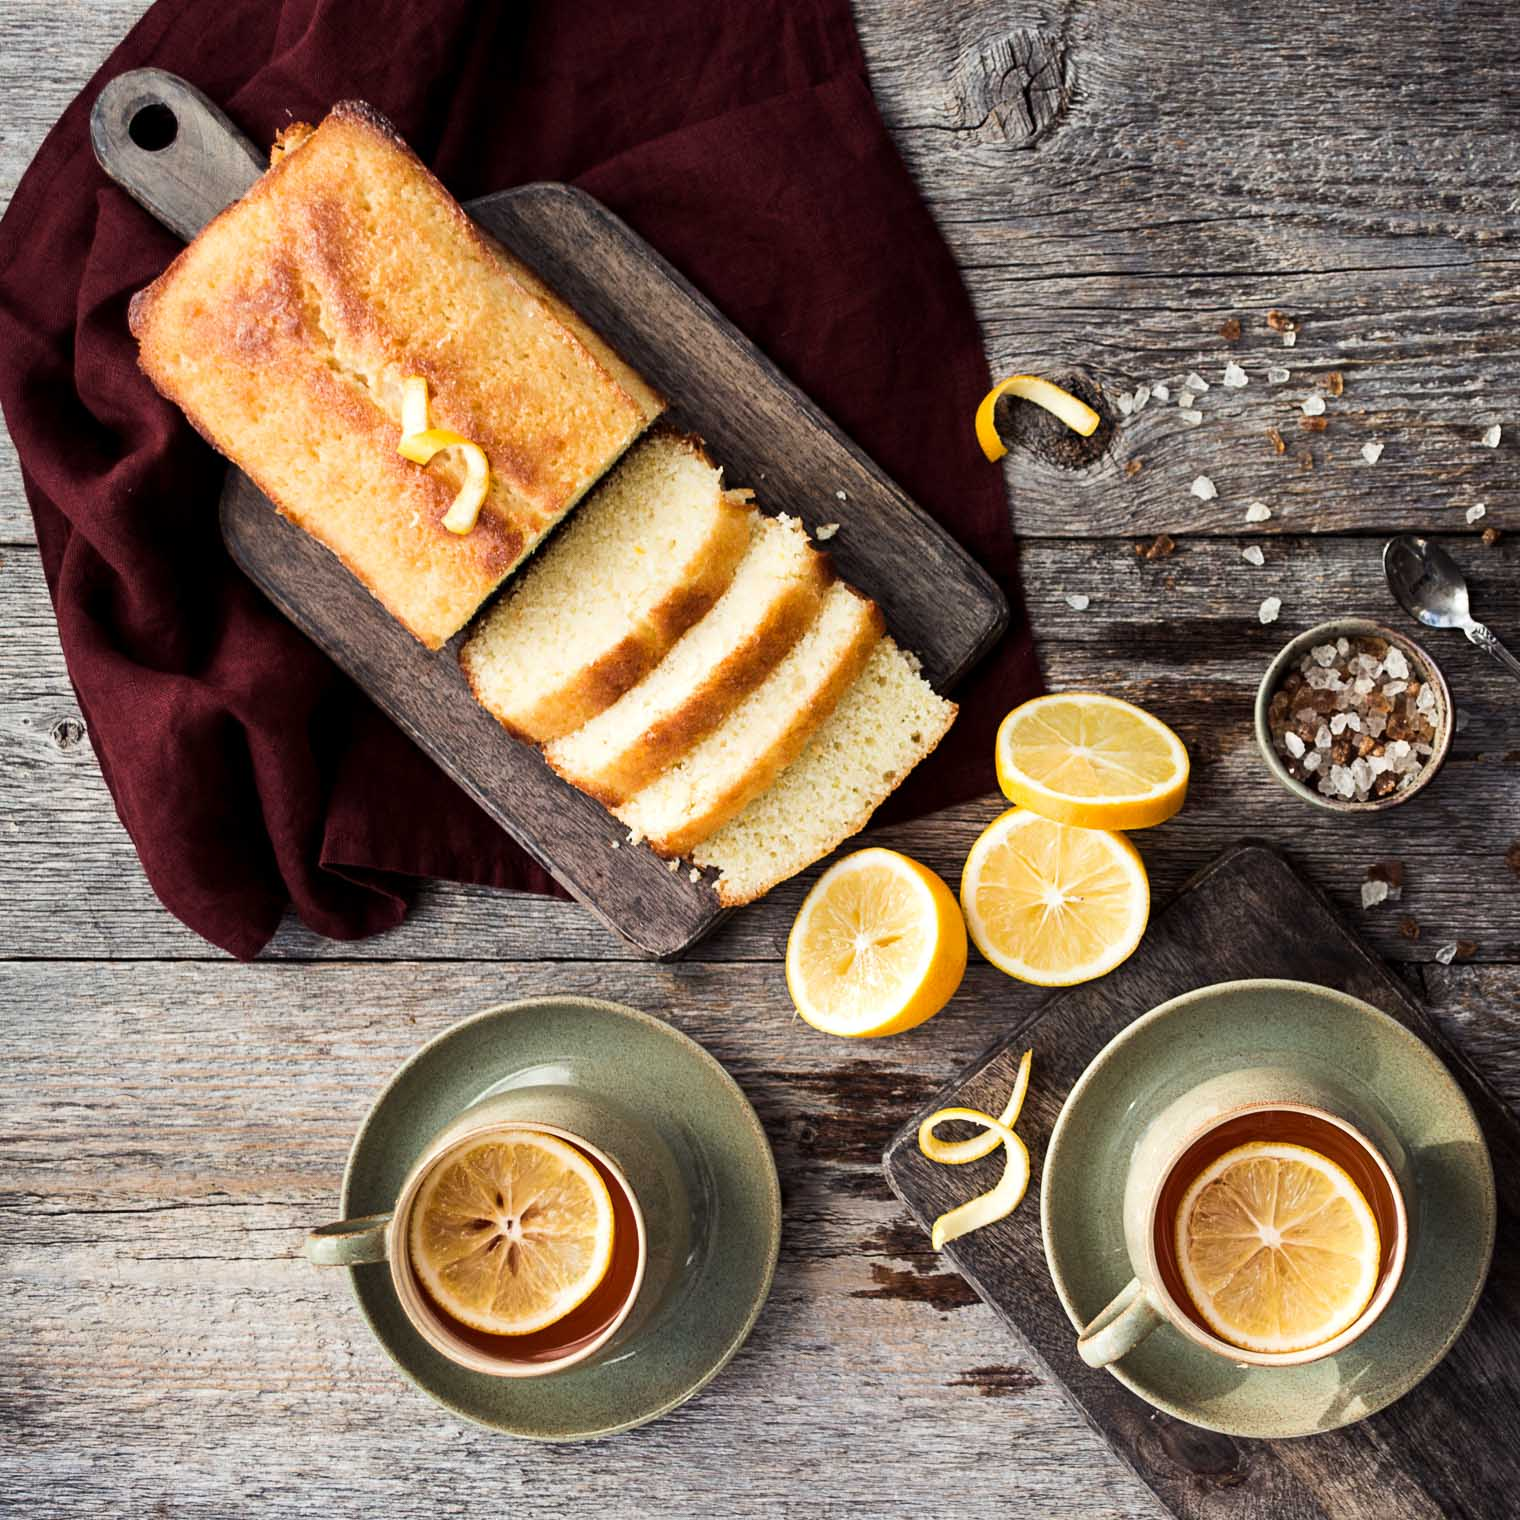 Meeting online friends is easy ... serve tea and lemon loaf ...